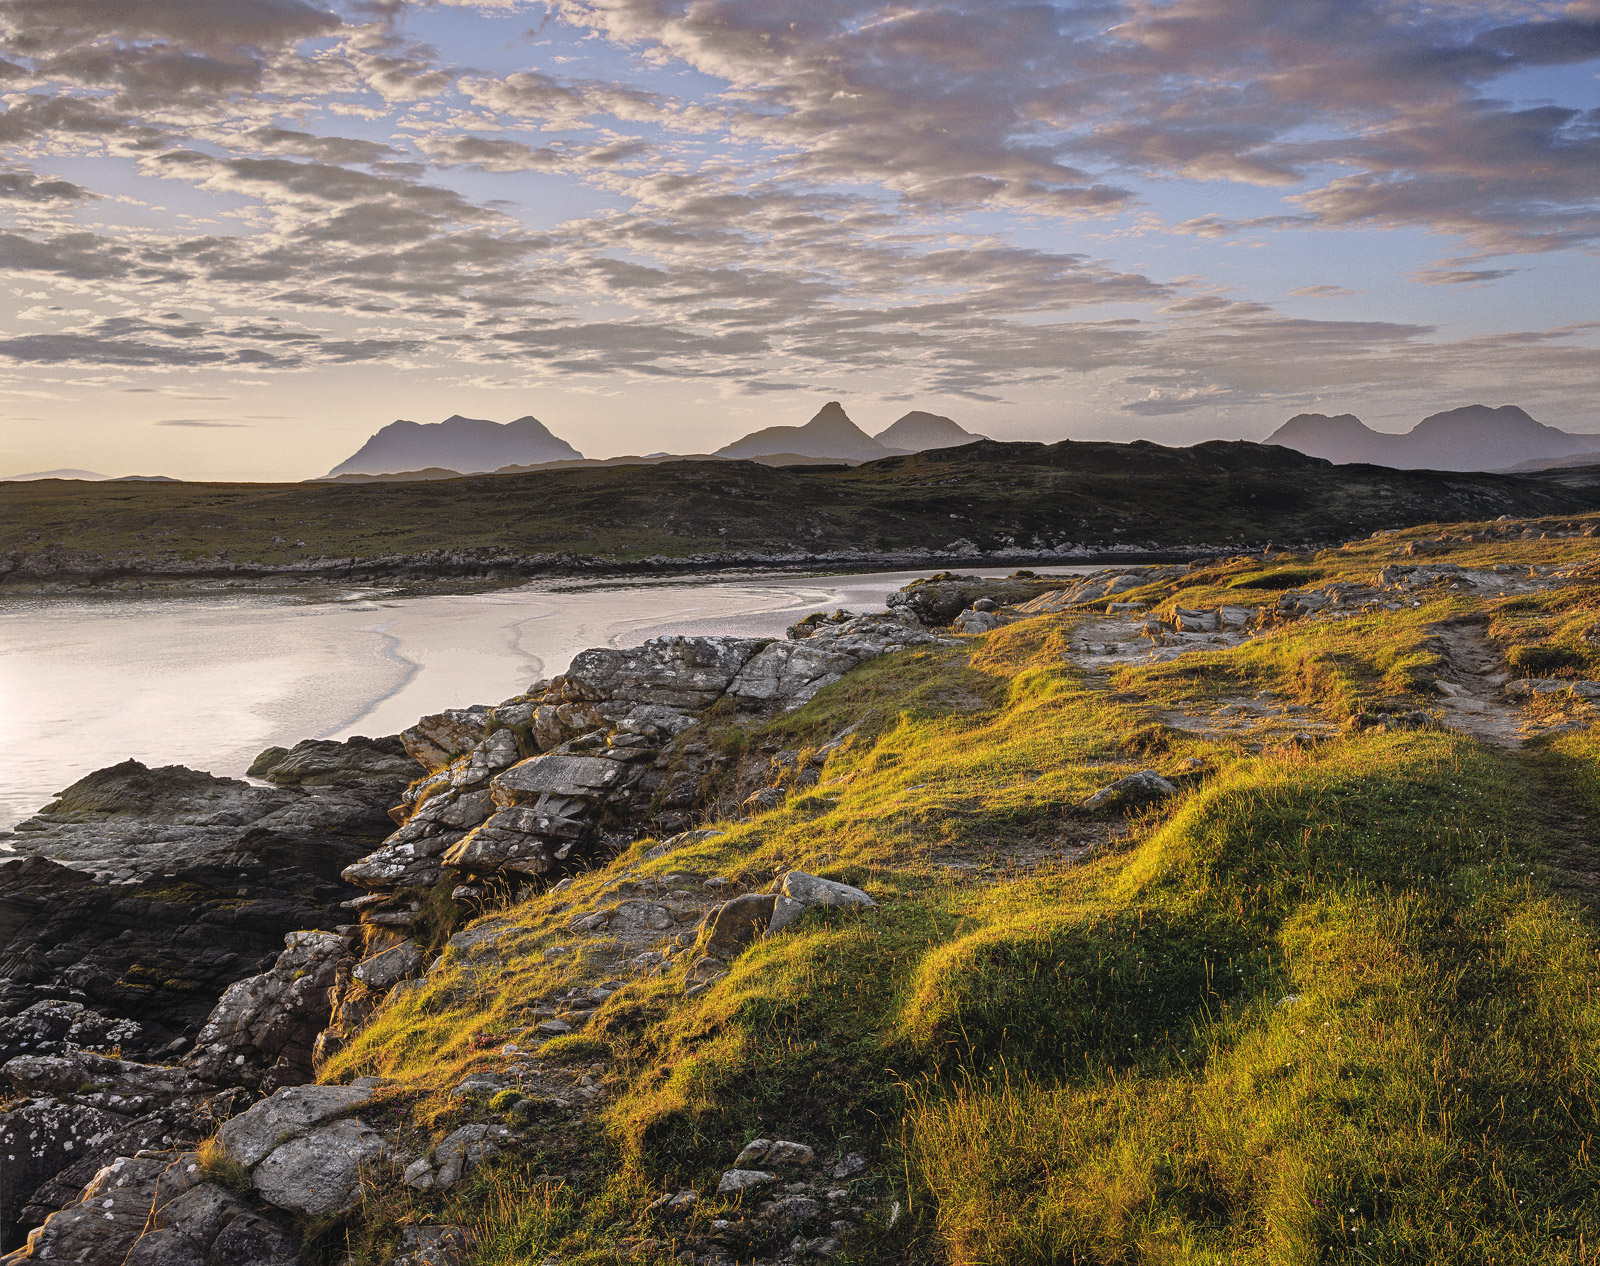 For a brief period there was a camp site located very close to this spectacular view across Achnahaird bay towards the instantly...